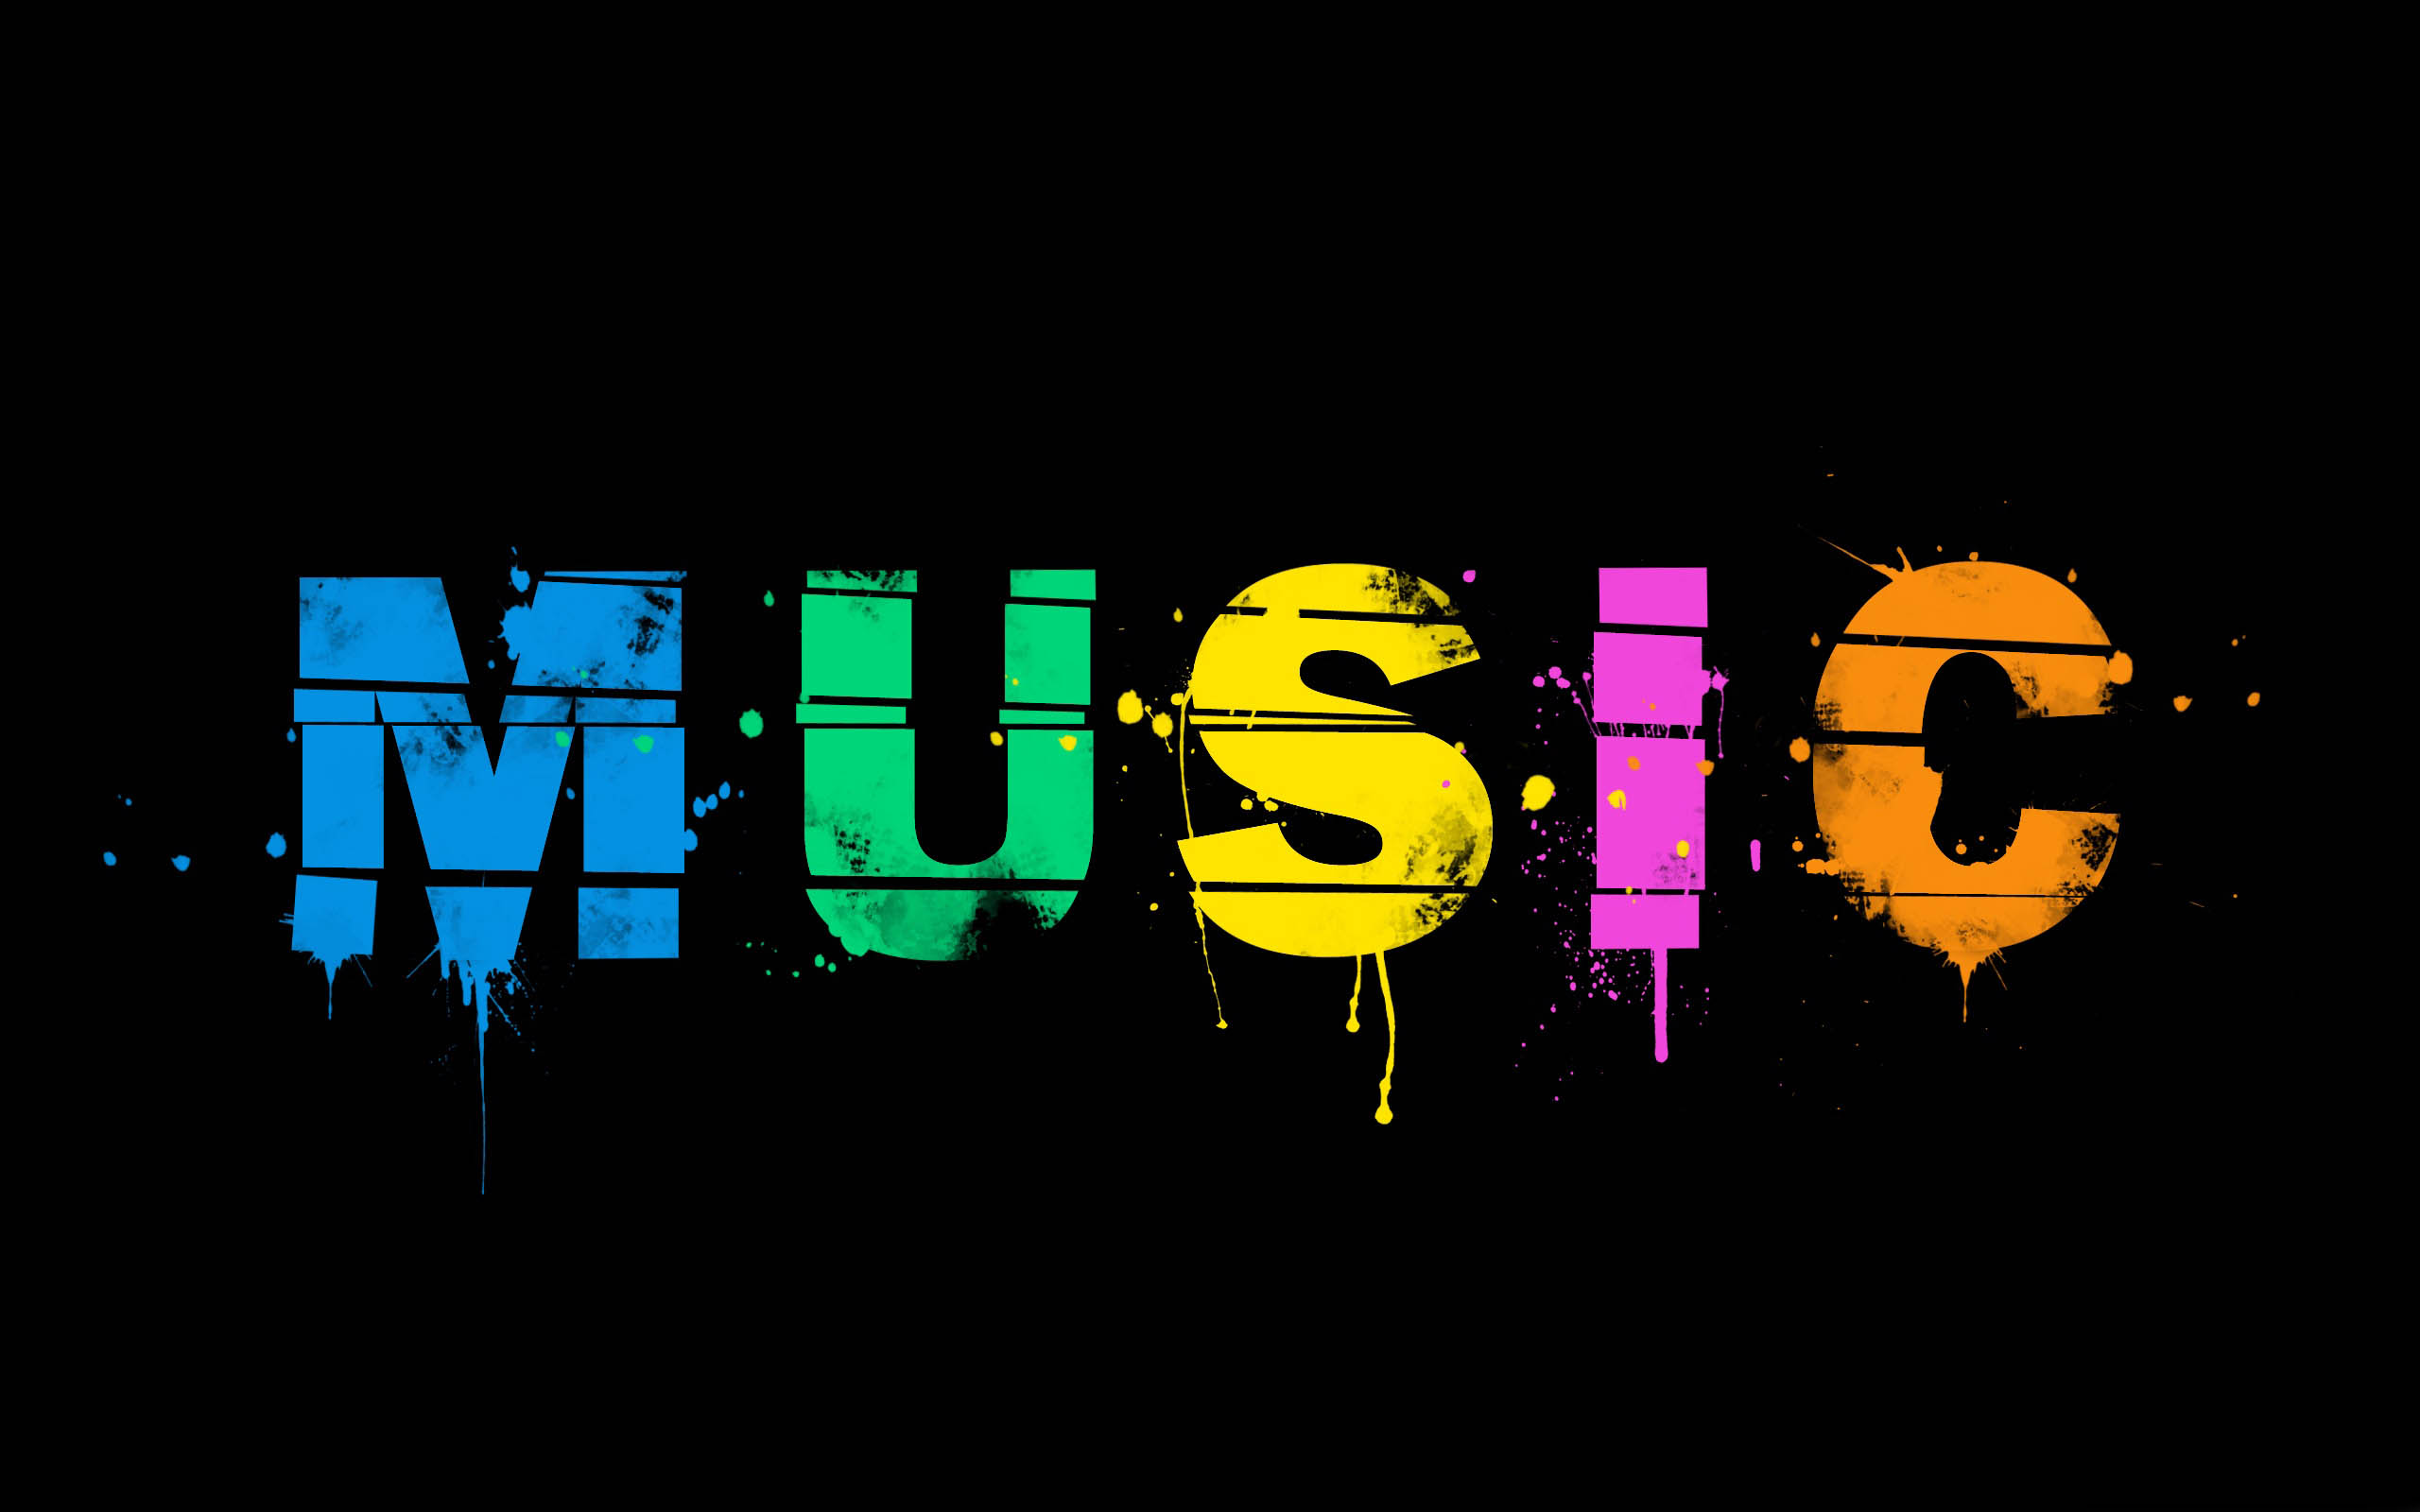 Music Hd Pic Hd Music Wallpaper Hd Wallpapers